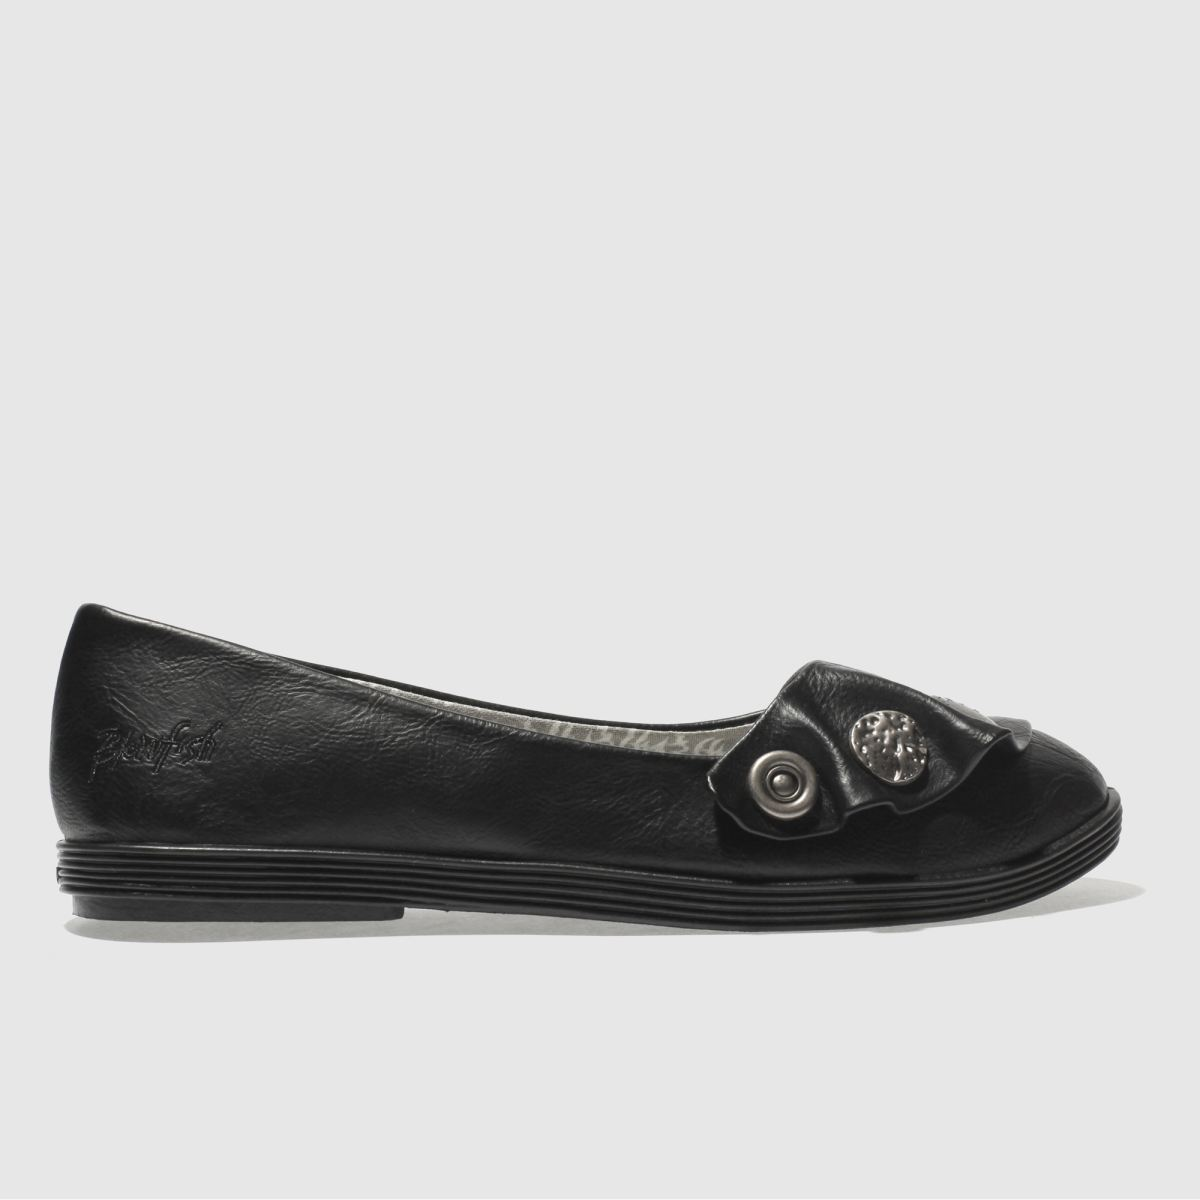 Blowfish Black Gayls Flat Shoes